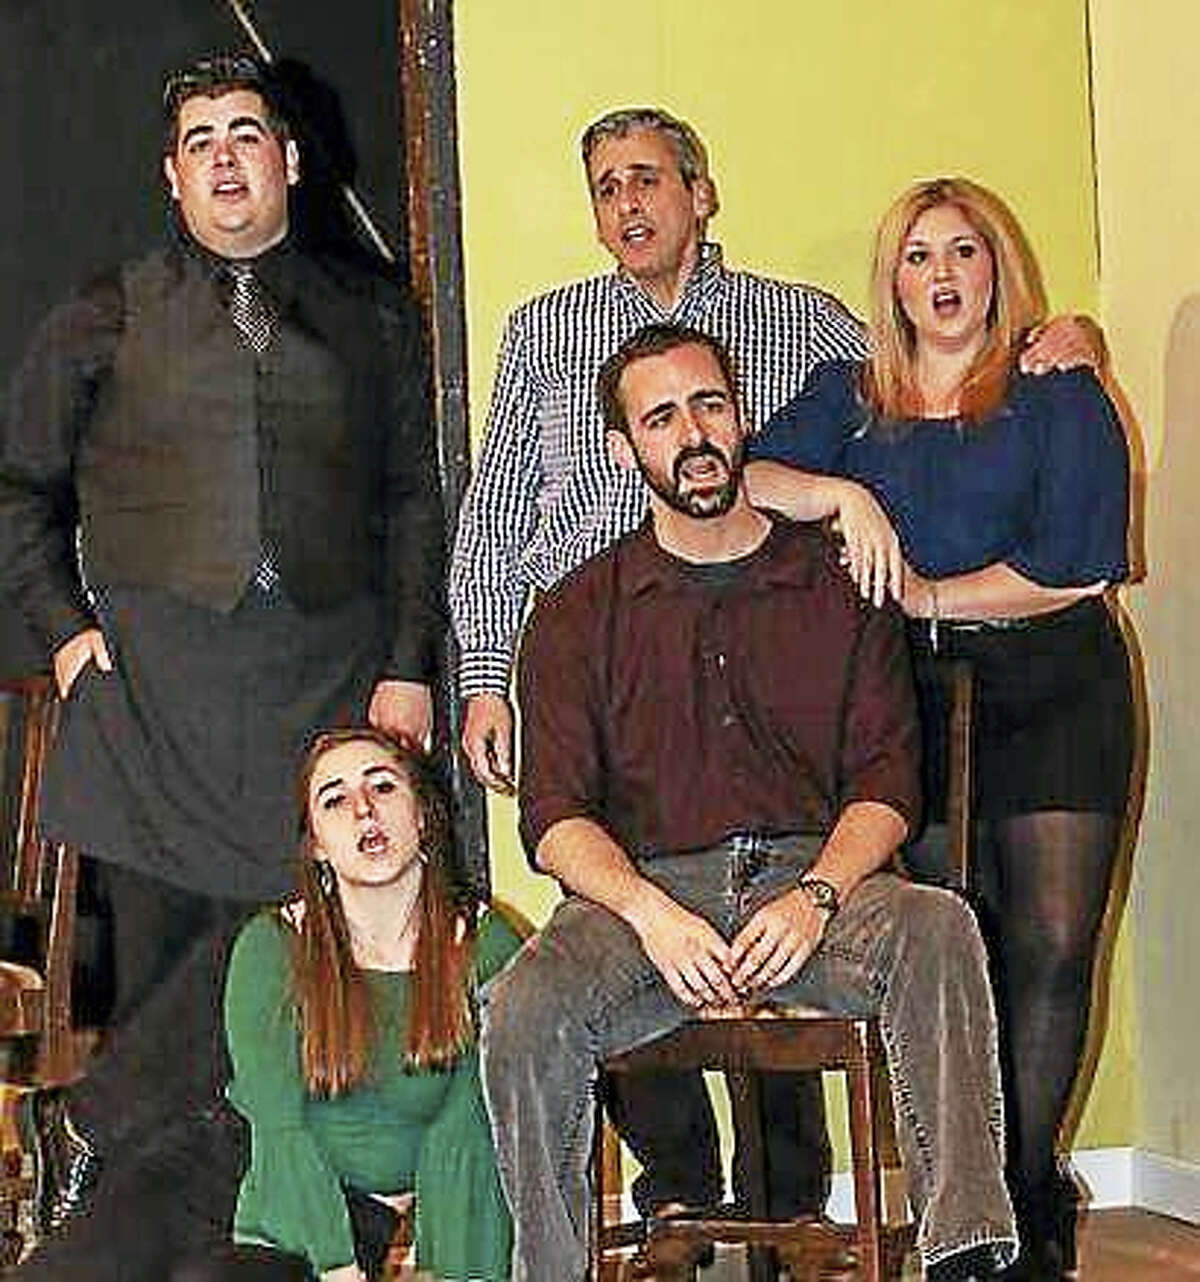 """The Goshen Players present the comedy musical, """"First Date"""" opening March 31 at the Goshen Old Town Hall."""